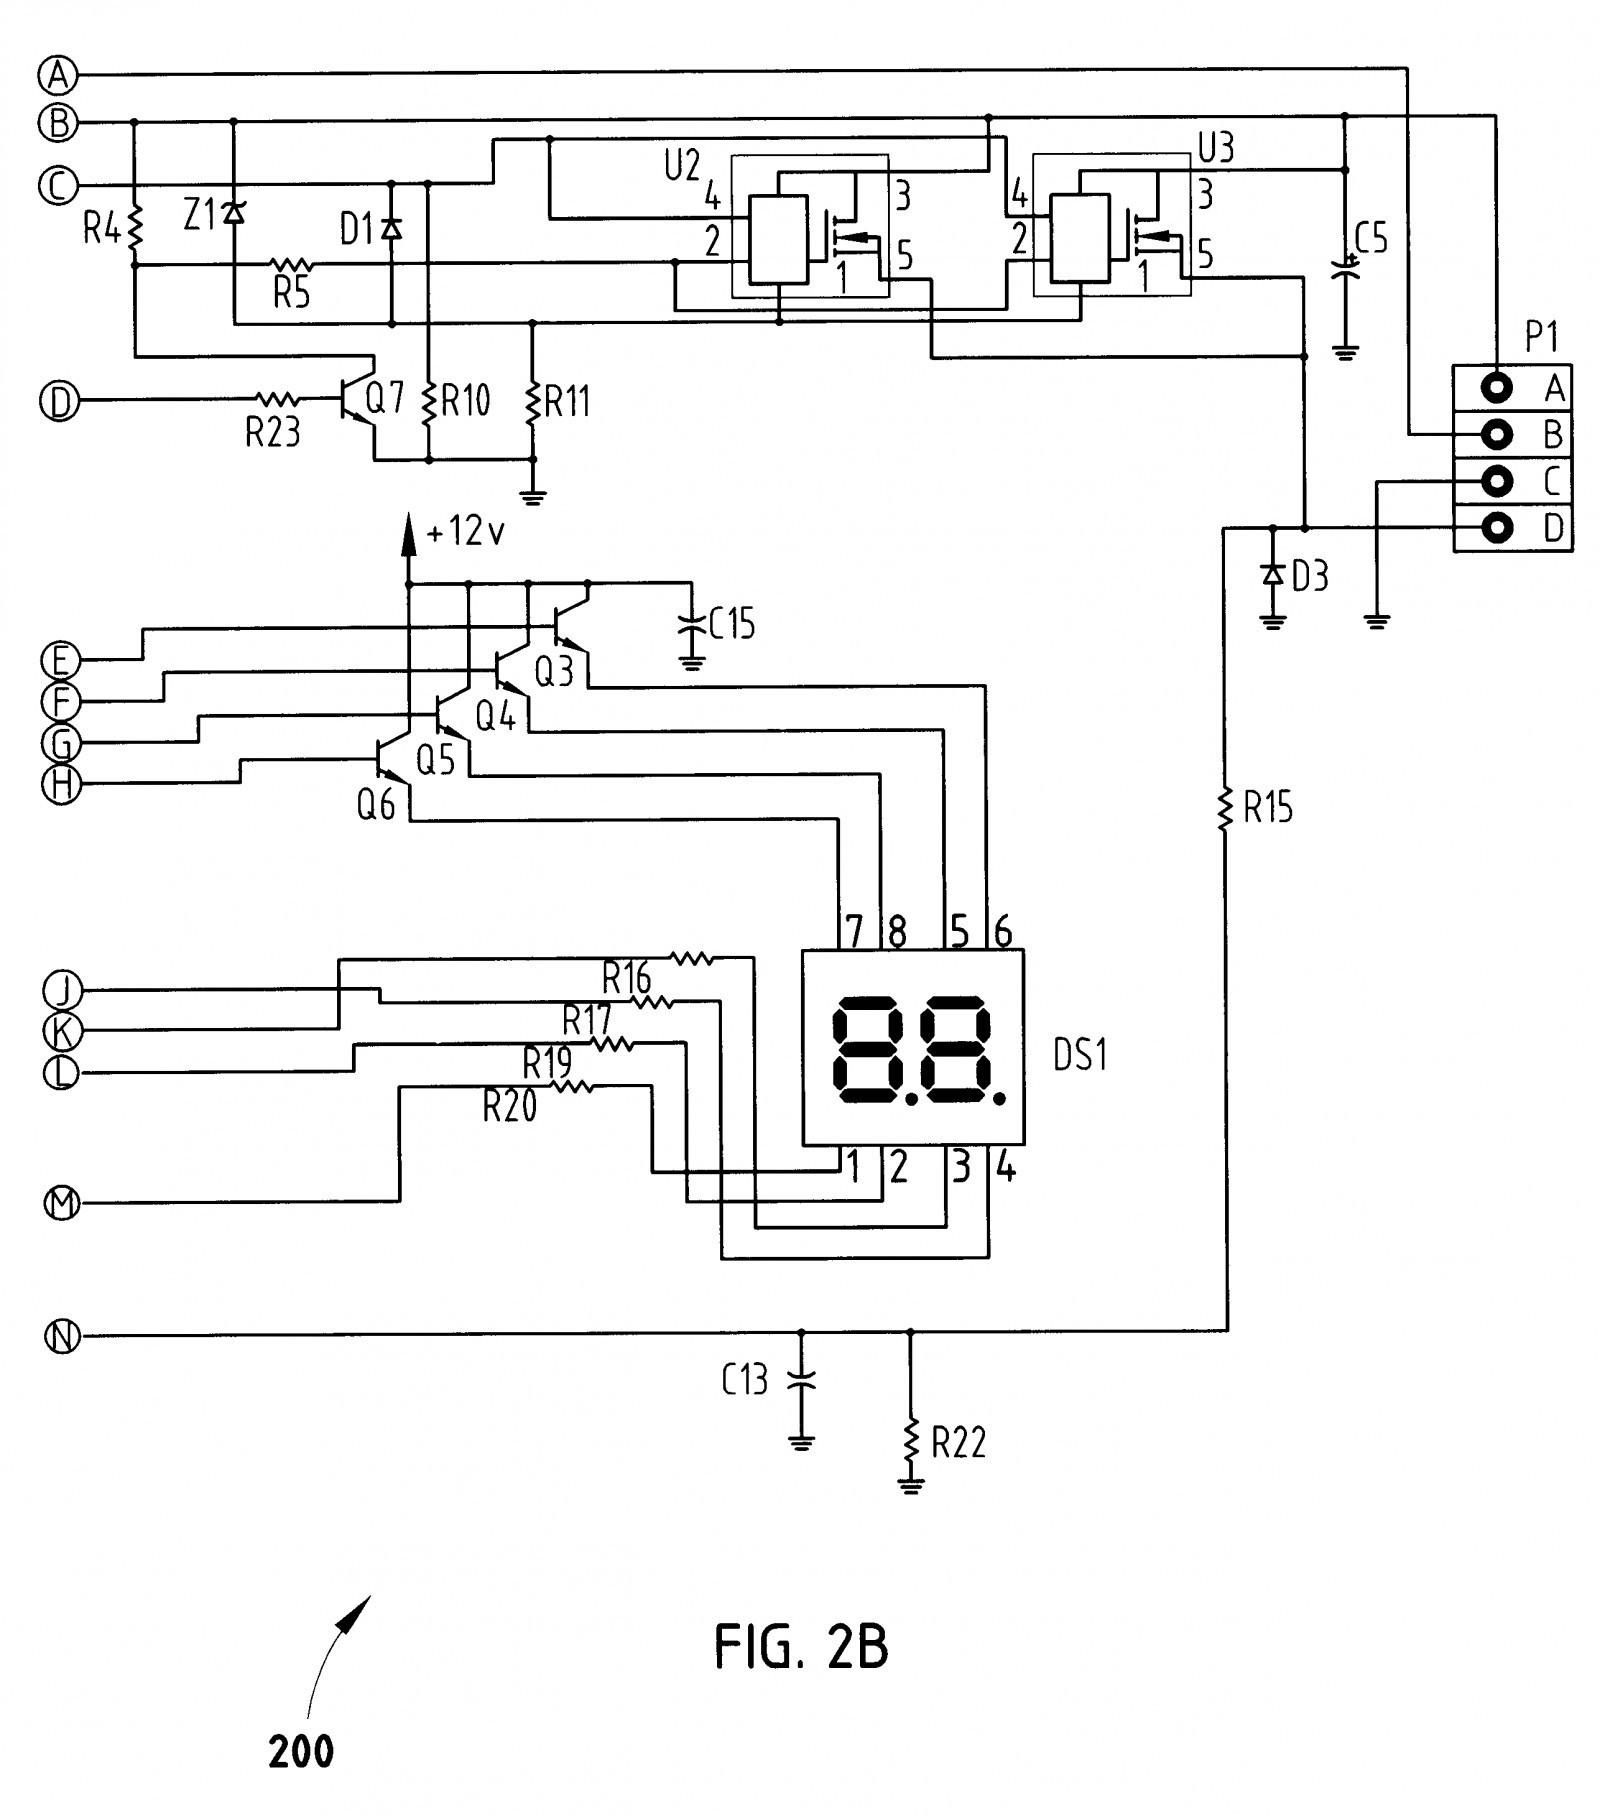 curt brake controller wiring diagram Download-Wiring Diagram for Trailer Brake Controller New Hopkins Brake Controller Wiring Diagram Electrics Schematic for Curt 13-i